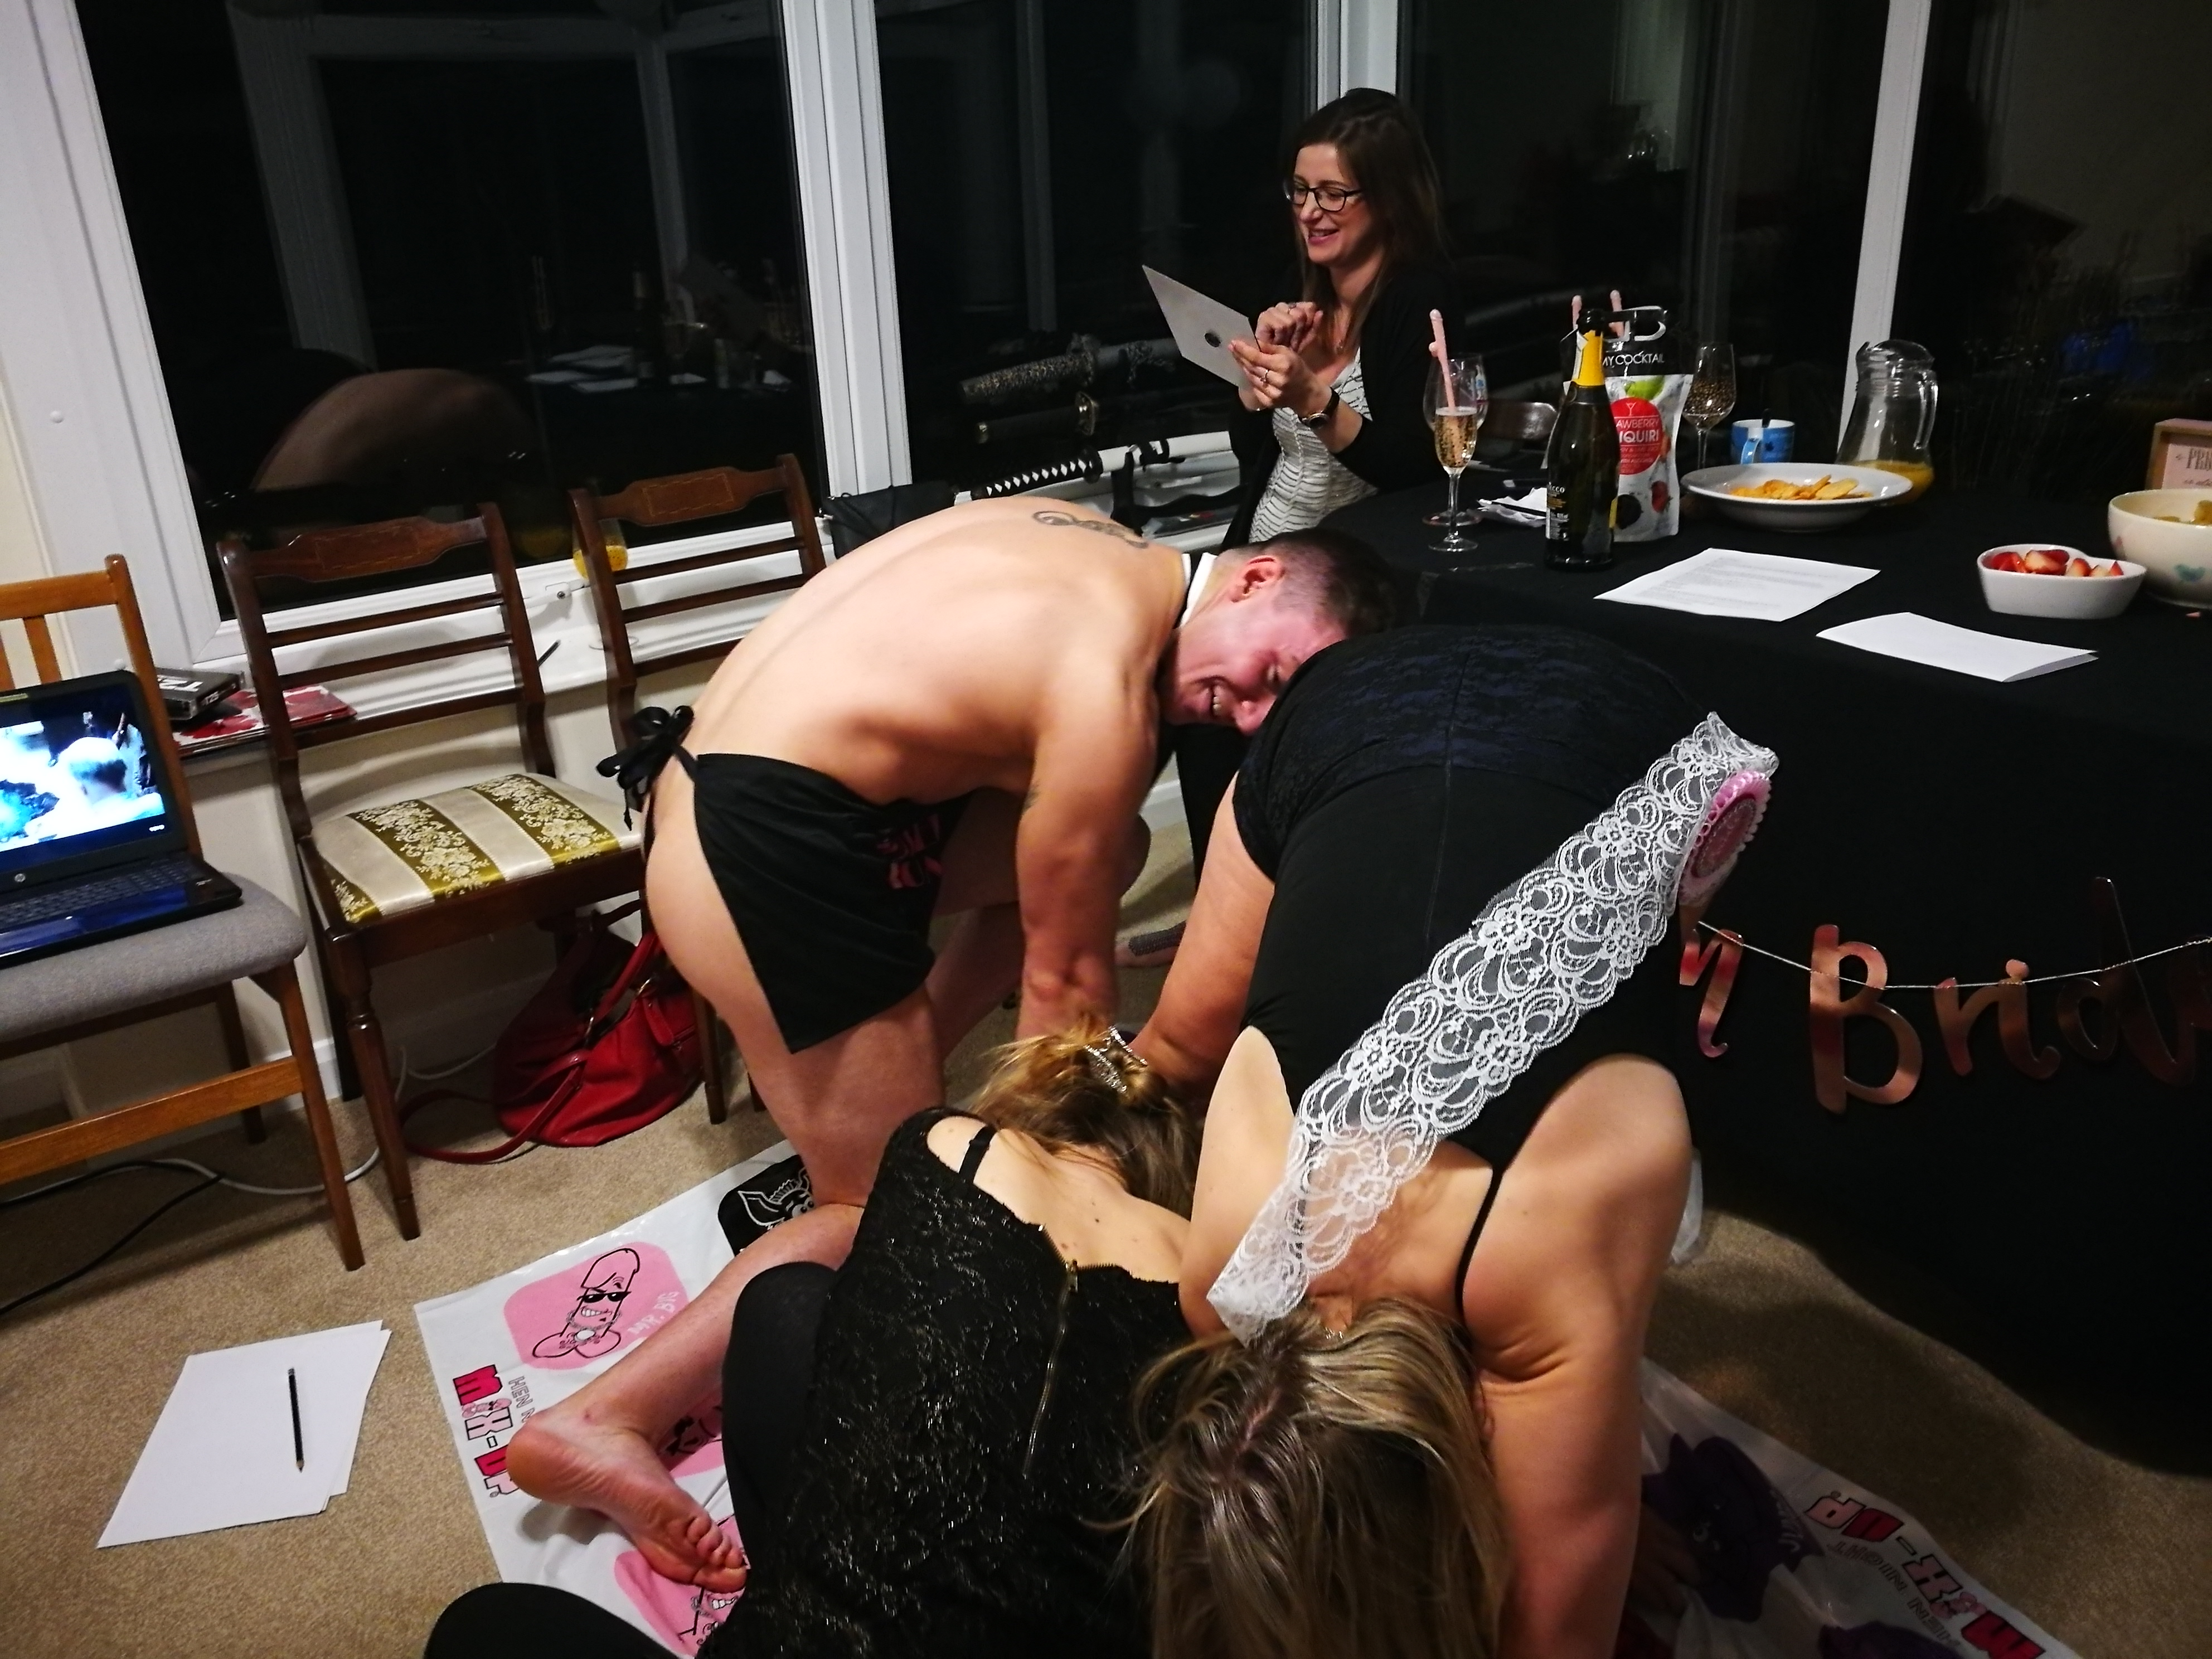 Playing twister with butler in buff